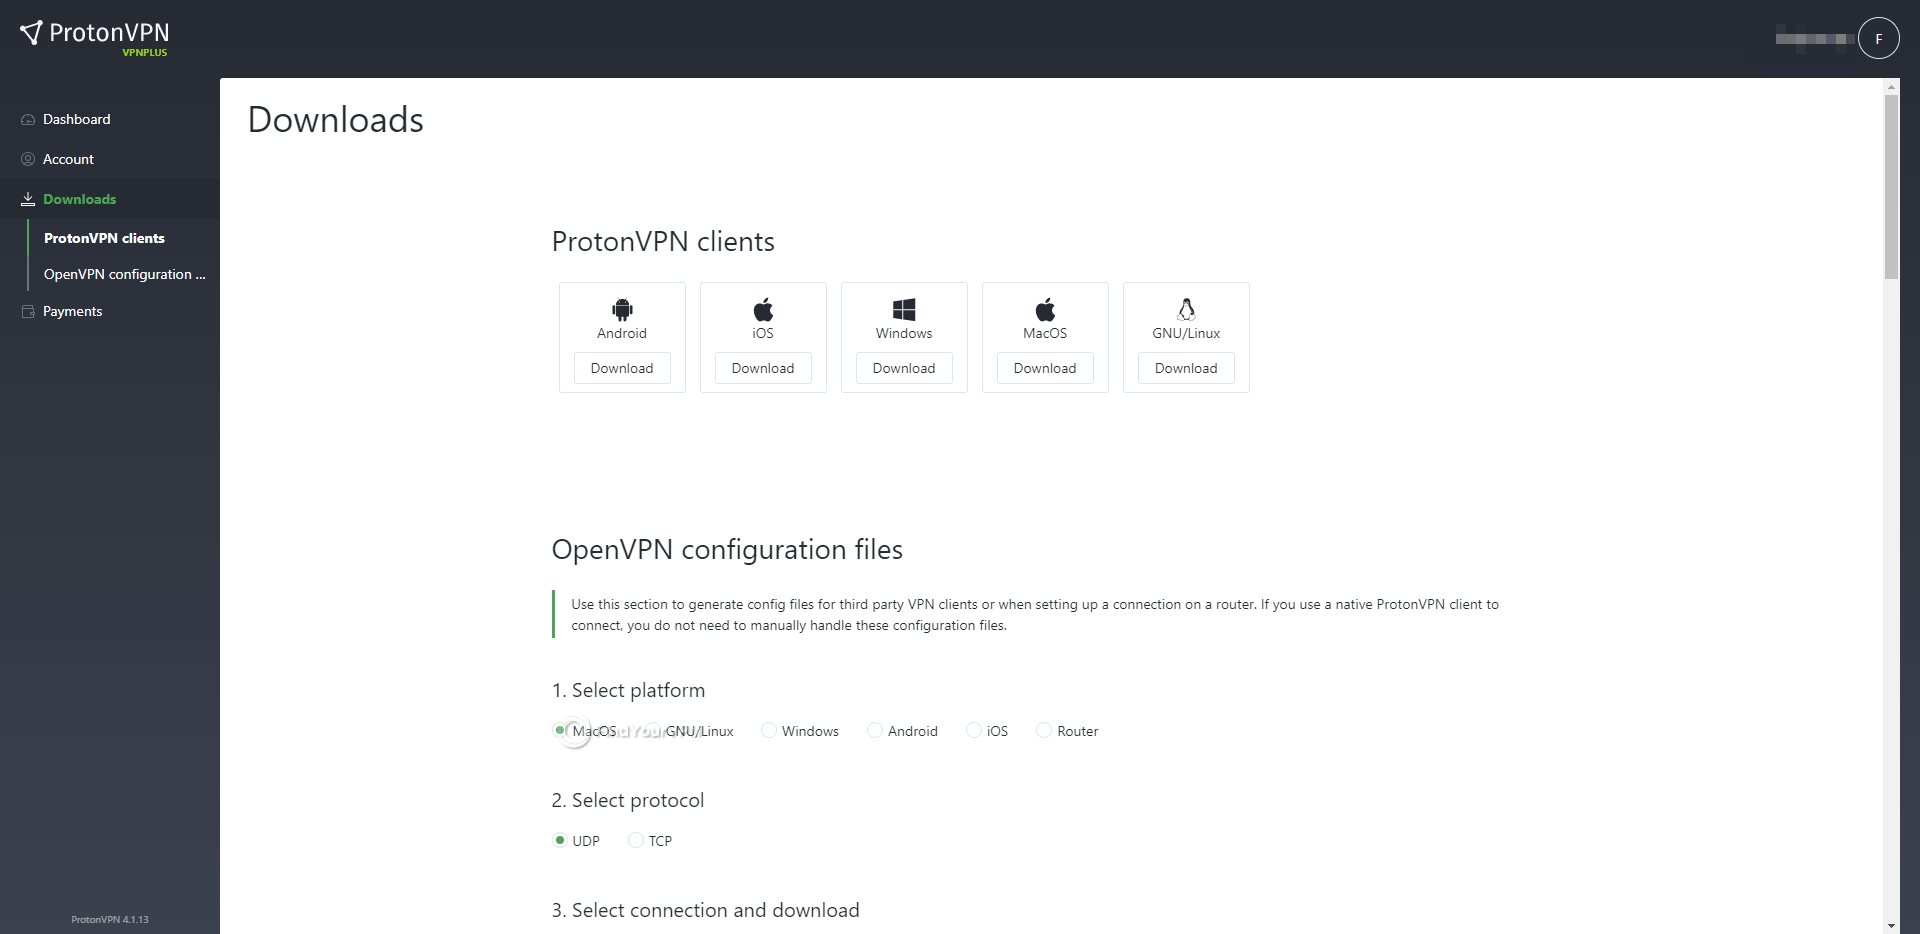 ProtonVPN Dashboard Download Section